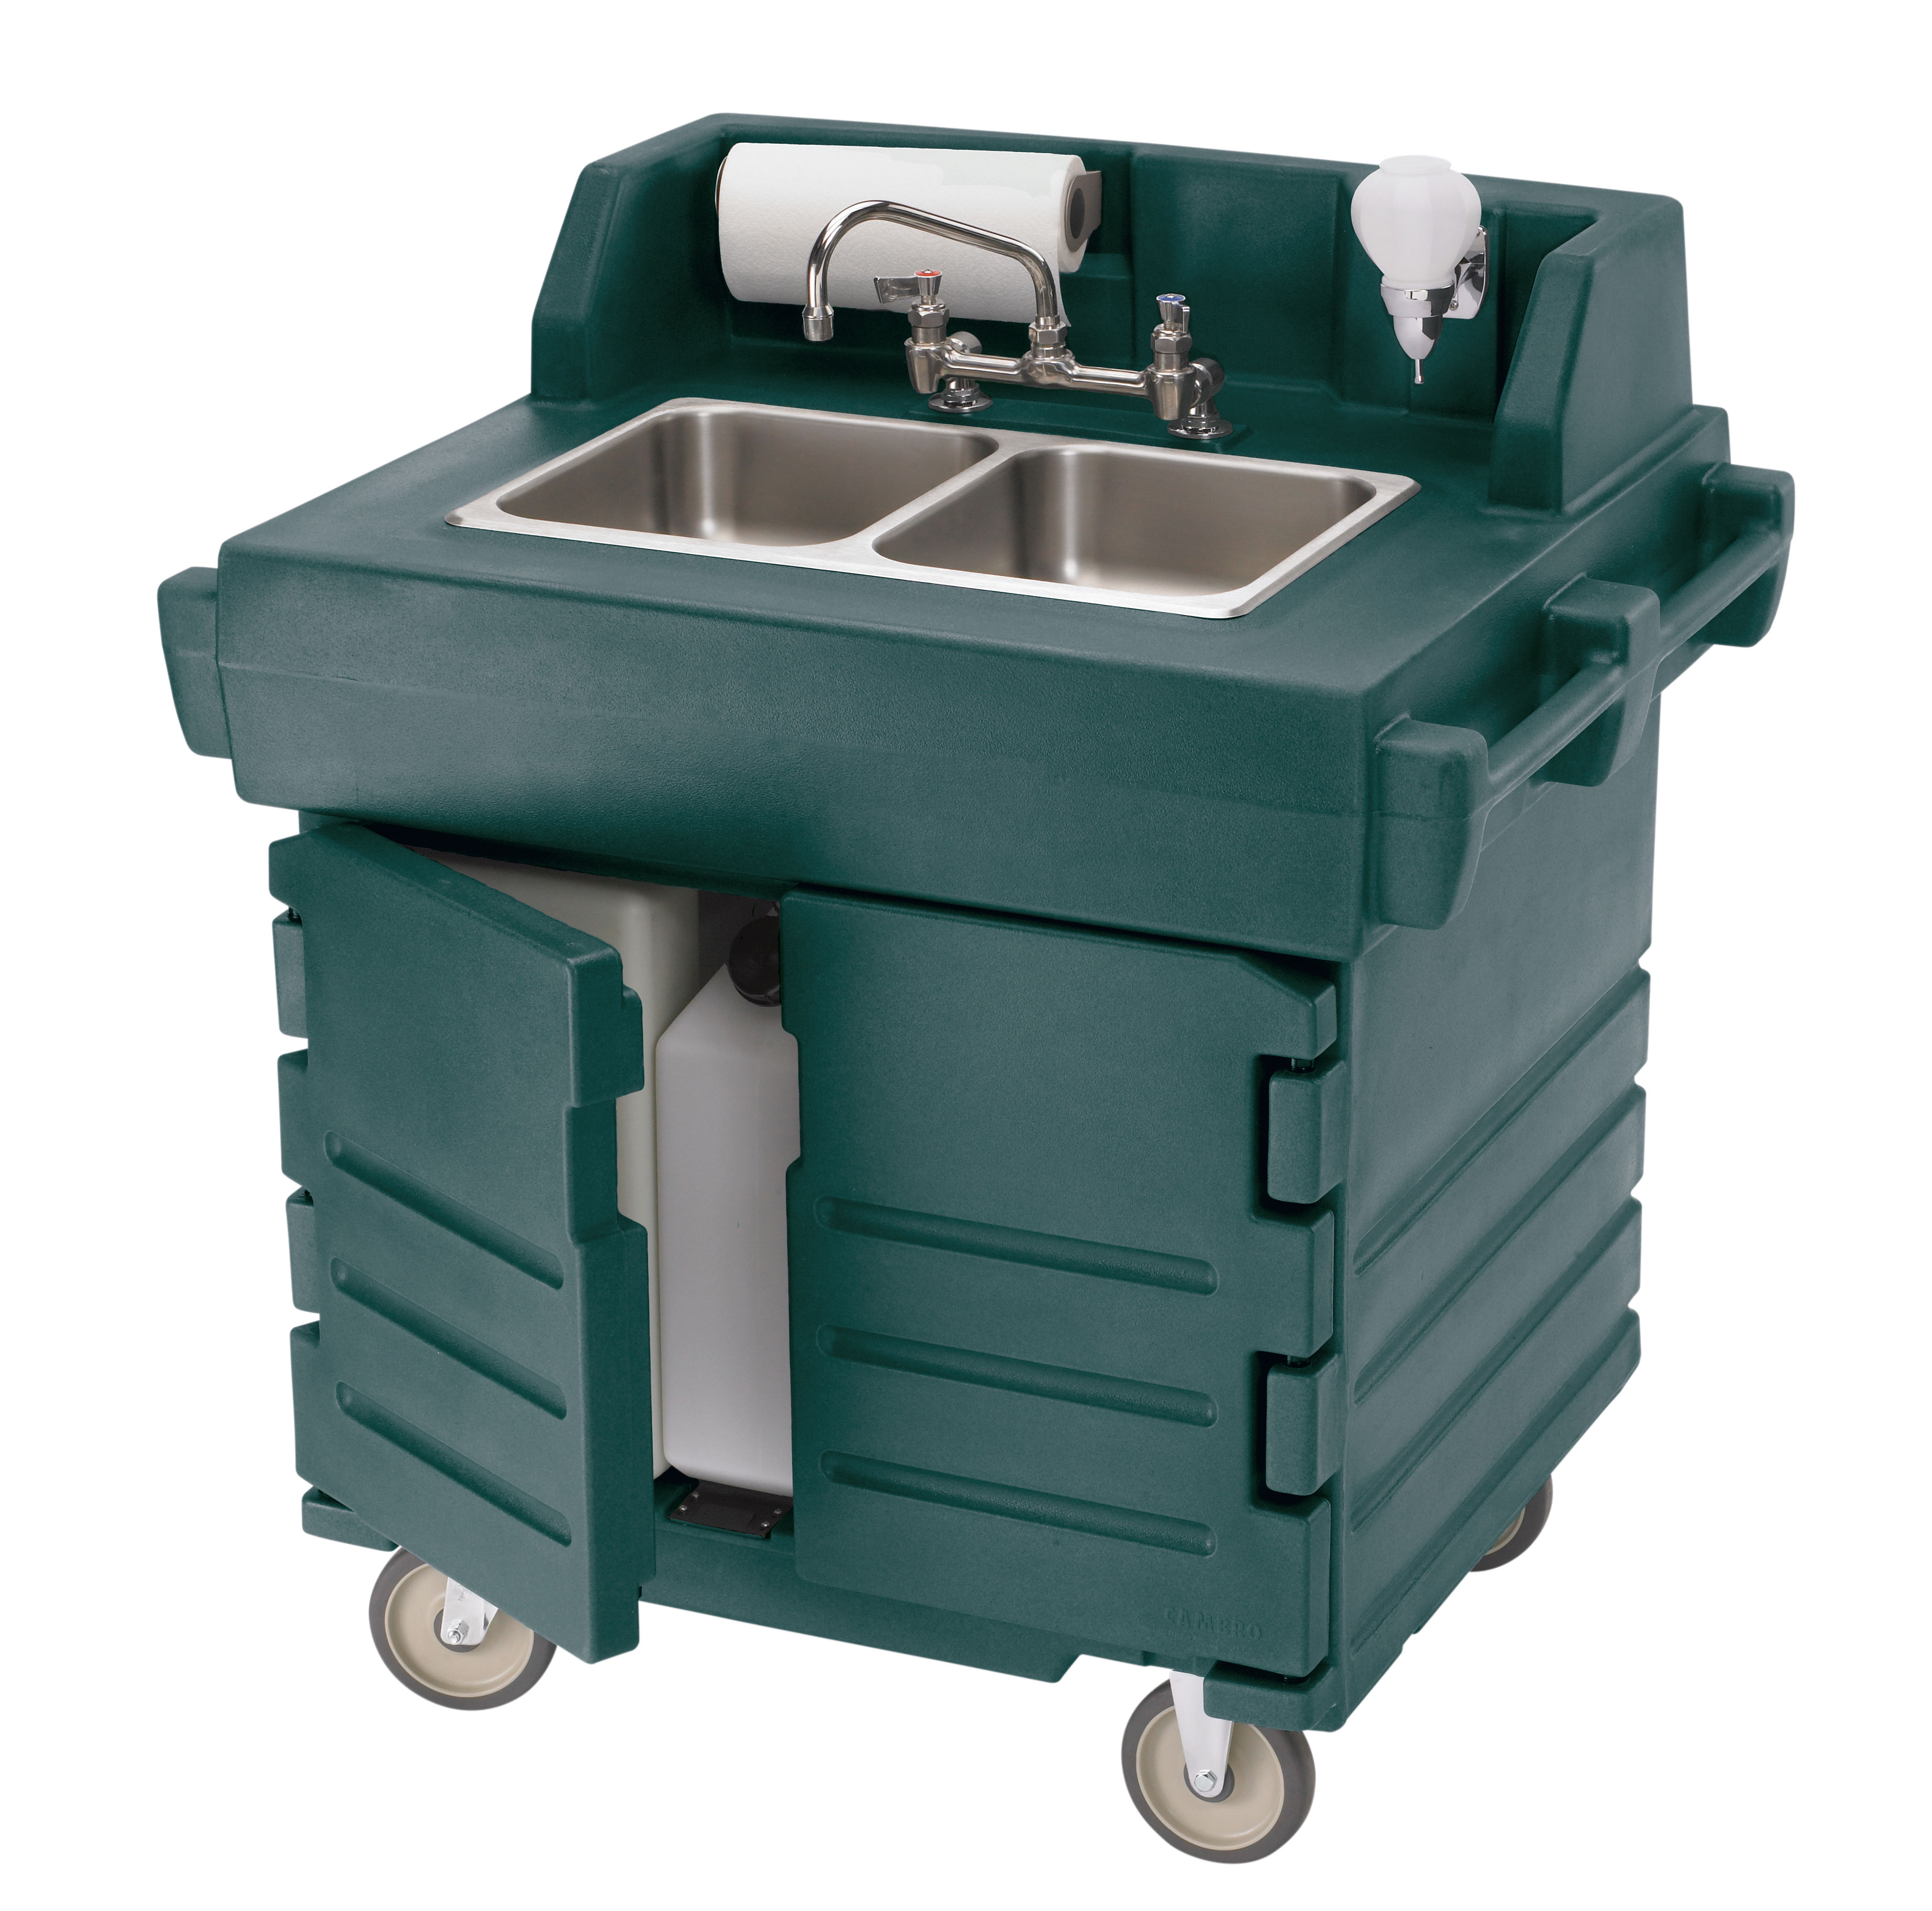 Cambro KSC402192 hand sink, mobile